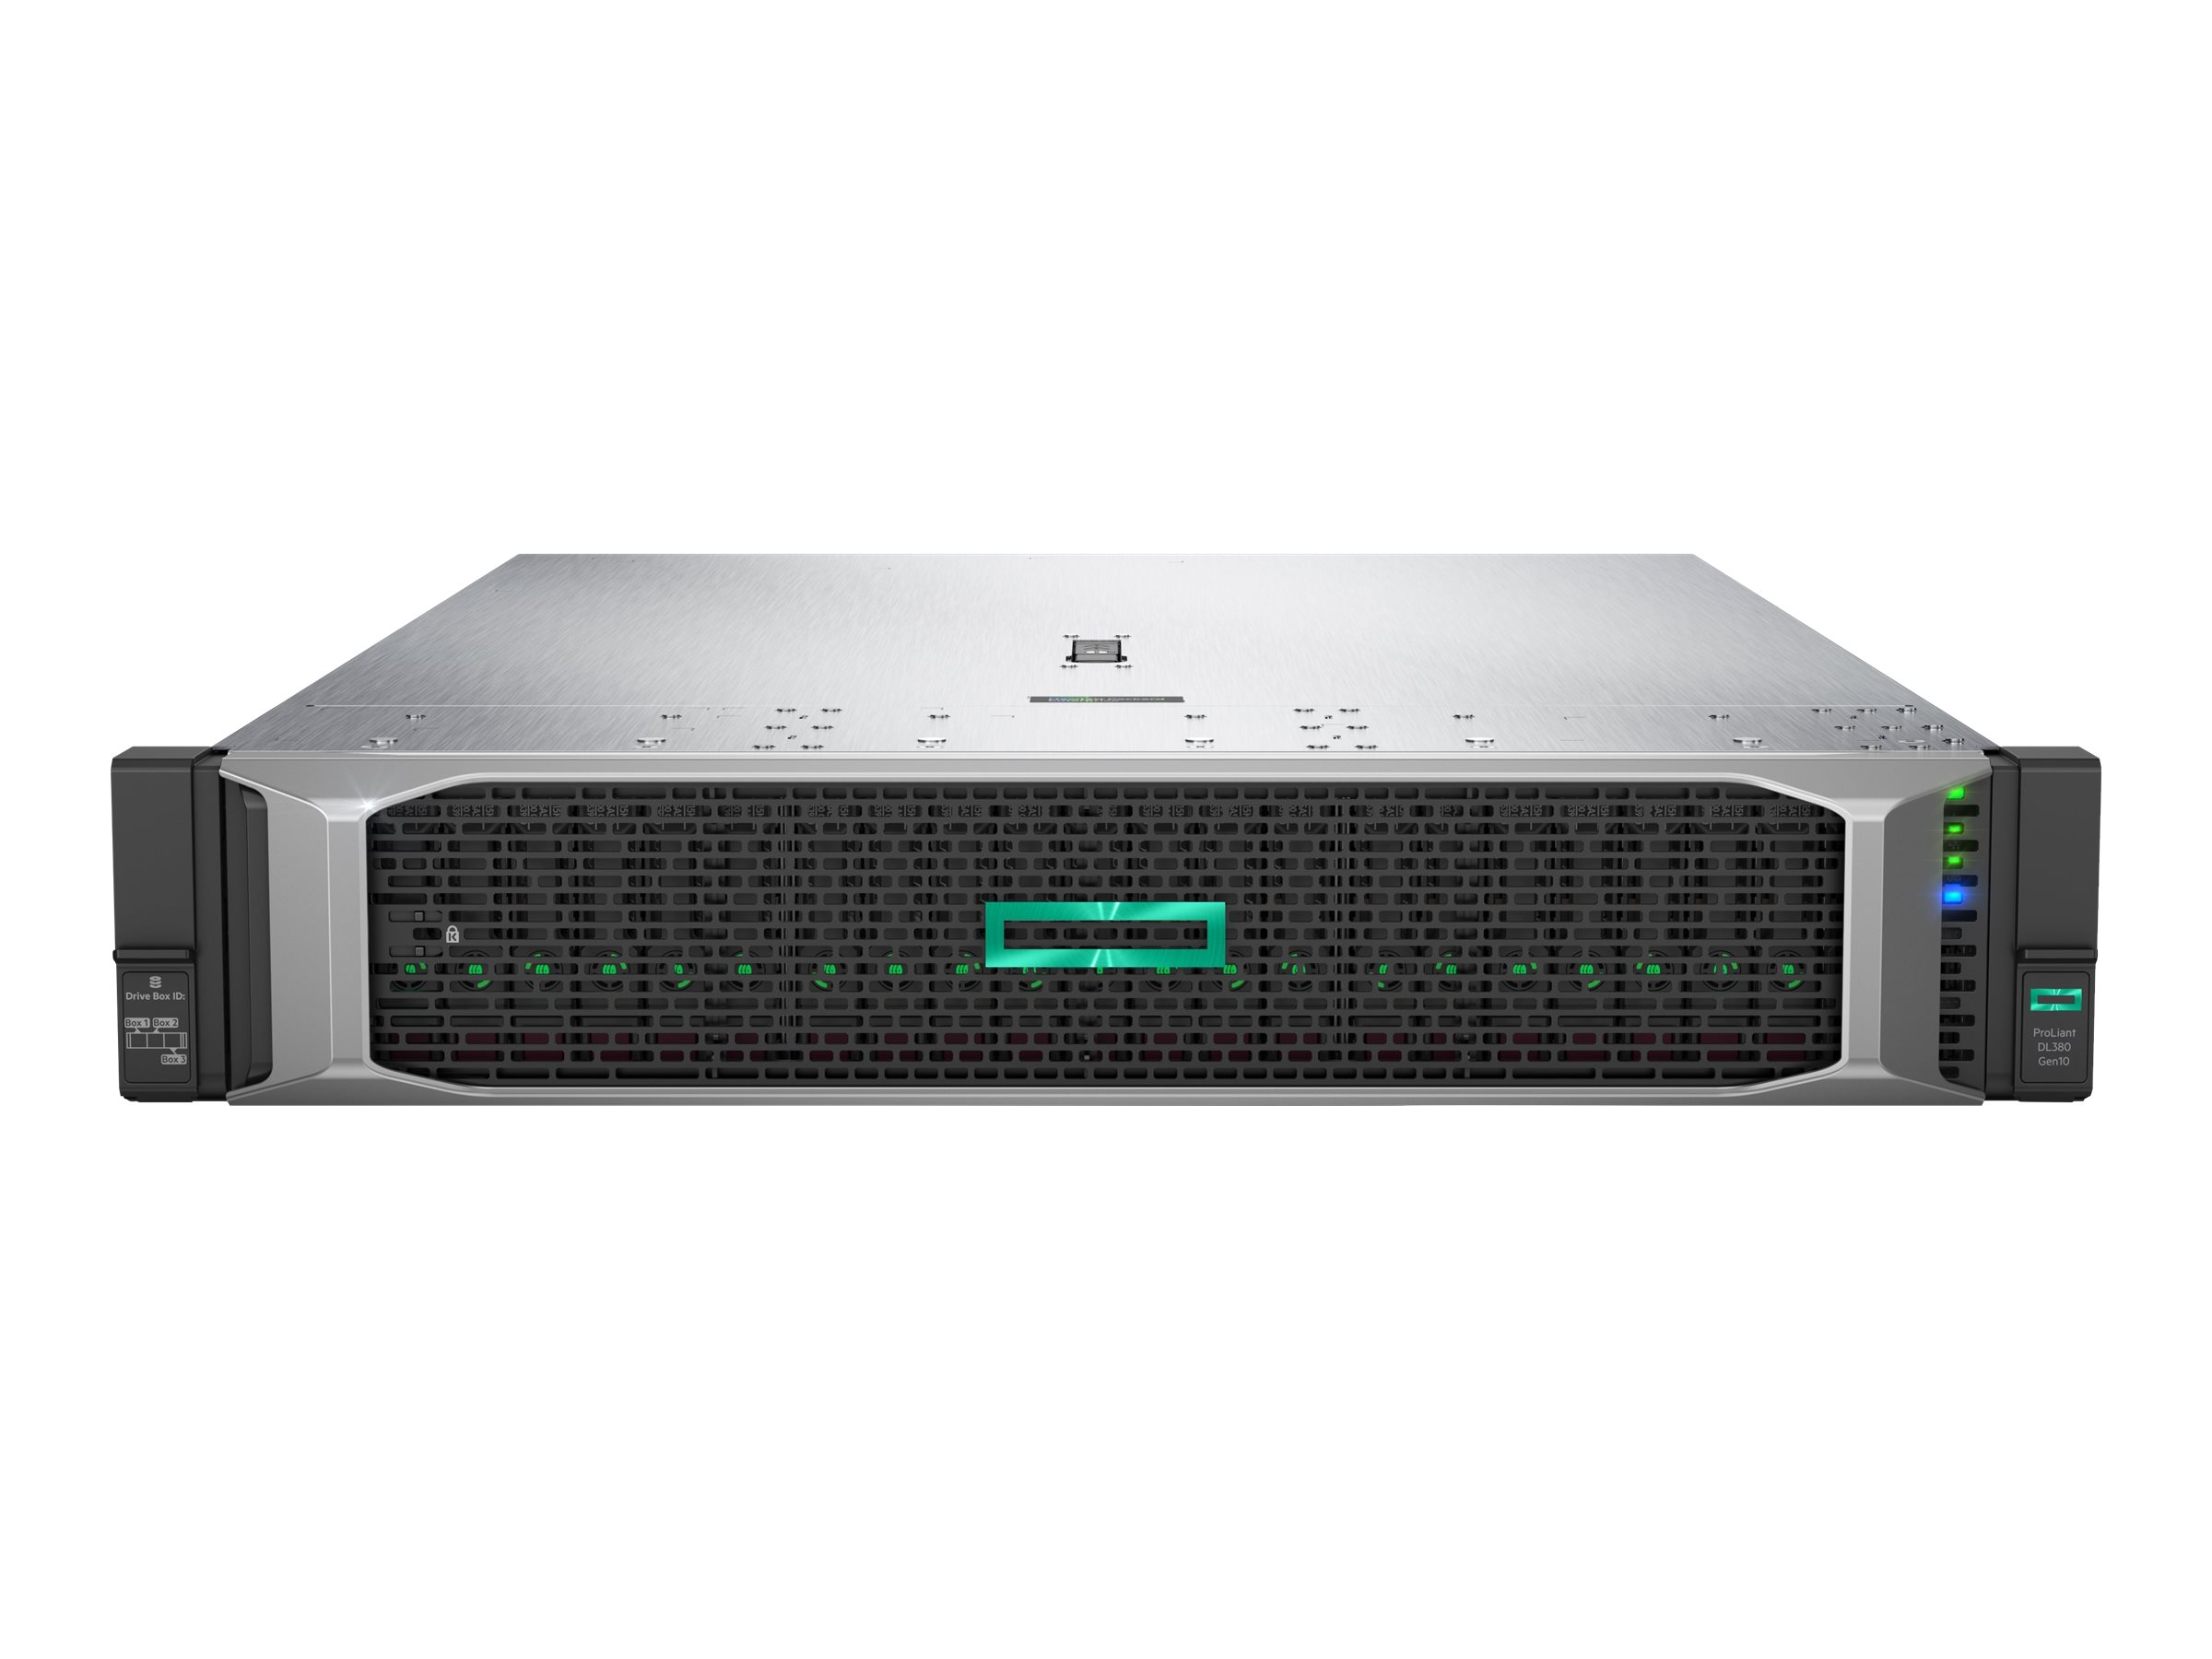 HPE ProLiant DL380 Gen10 SMB Networking Choice - rack-mountable - Xeon Gold 5218R 2.1 GHz - 32 GB